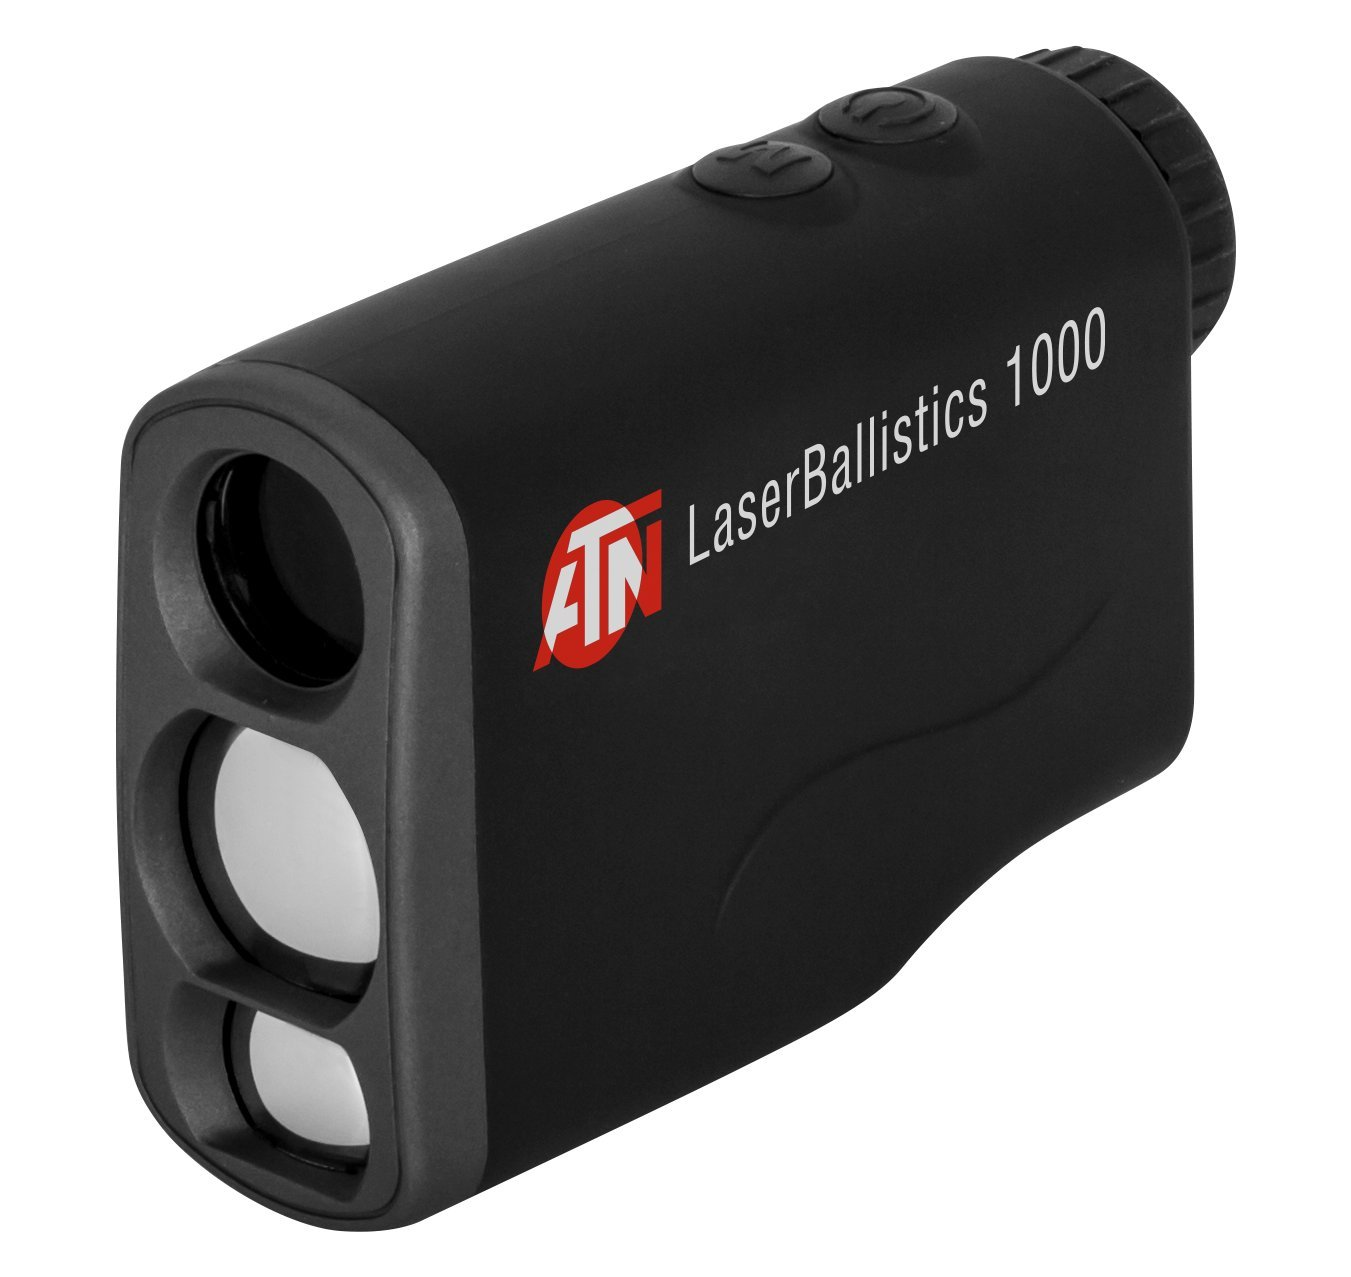 ATN Laser Ballistics 1000 Smart Laser Rangefinder w/Bluetooth, device works with Mil and MOA scopes using ATN Ballistic Calculator App by ATN